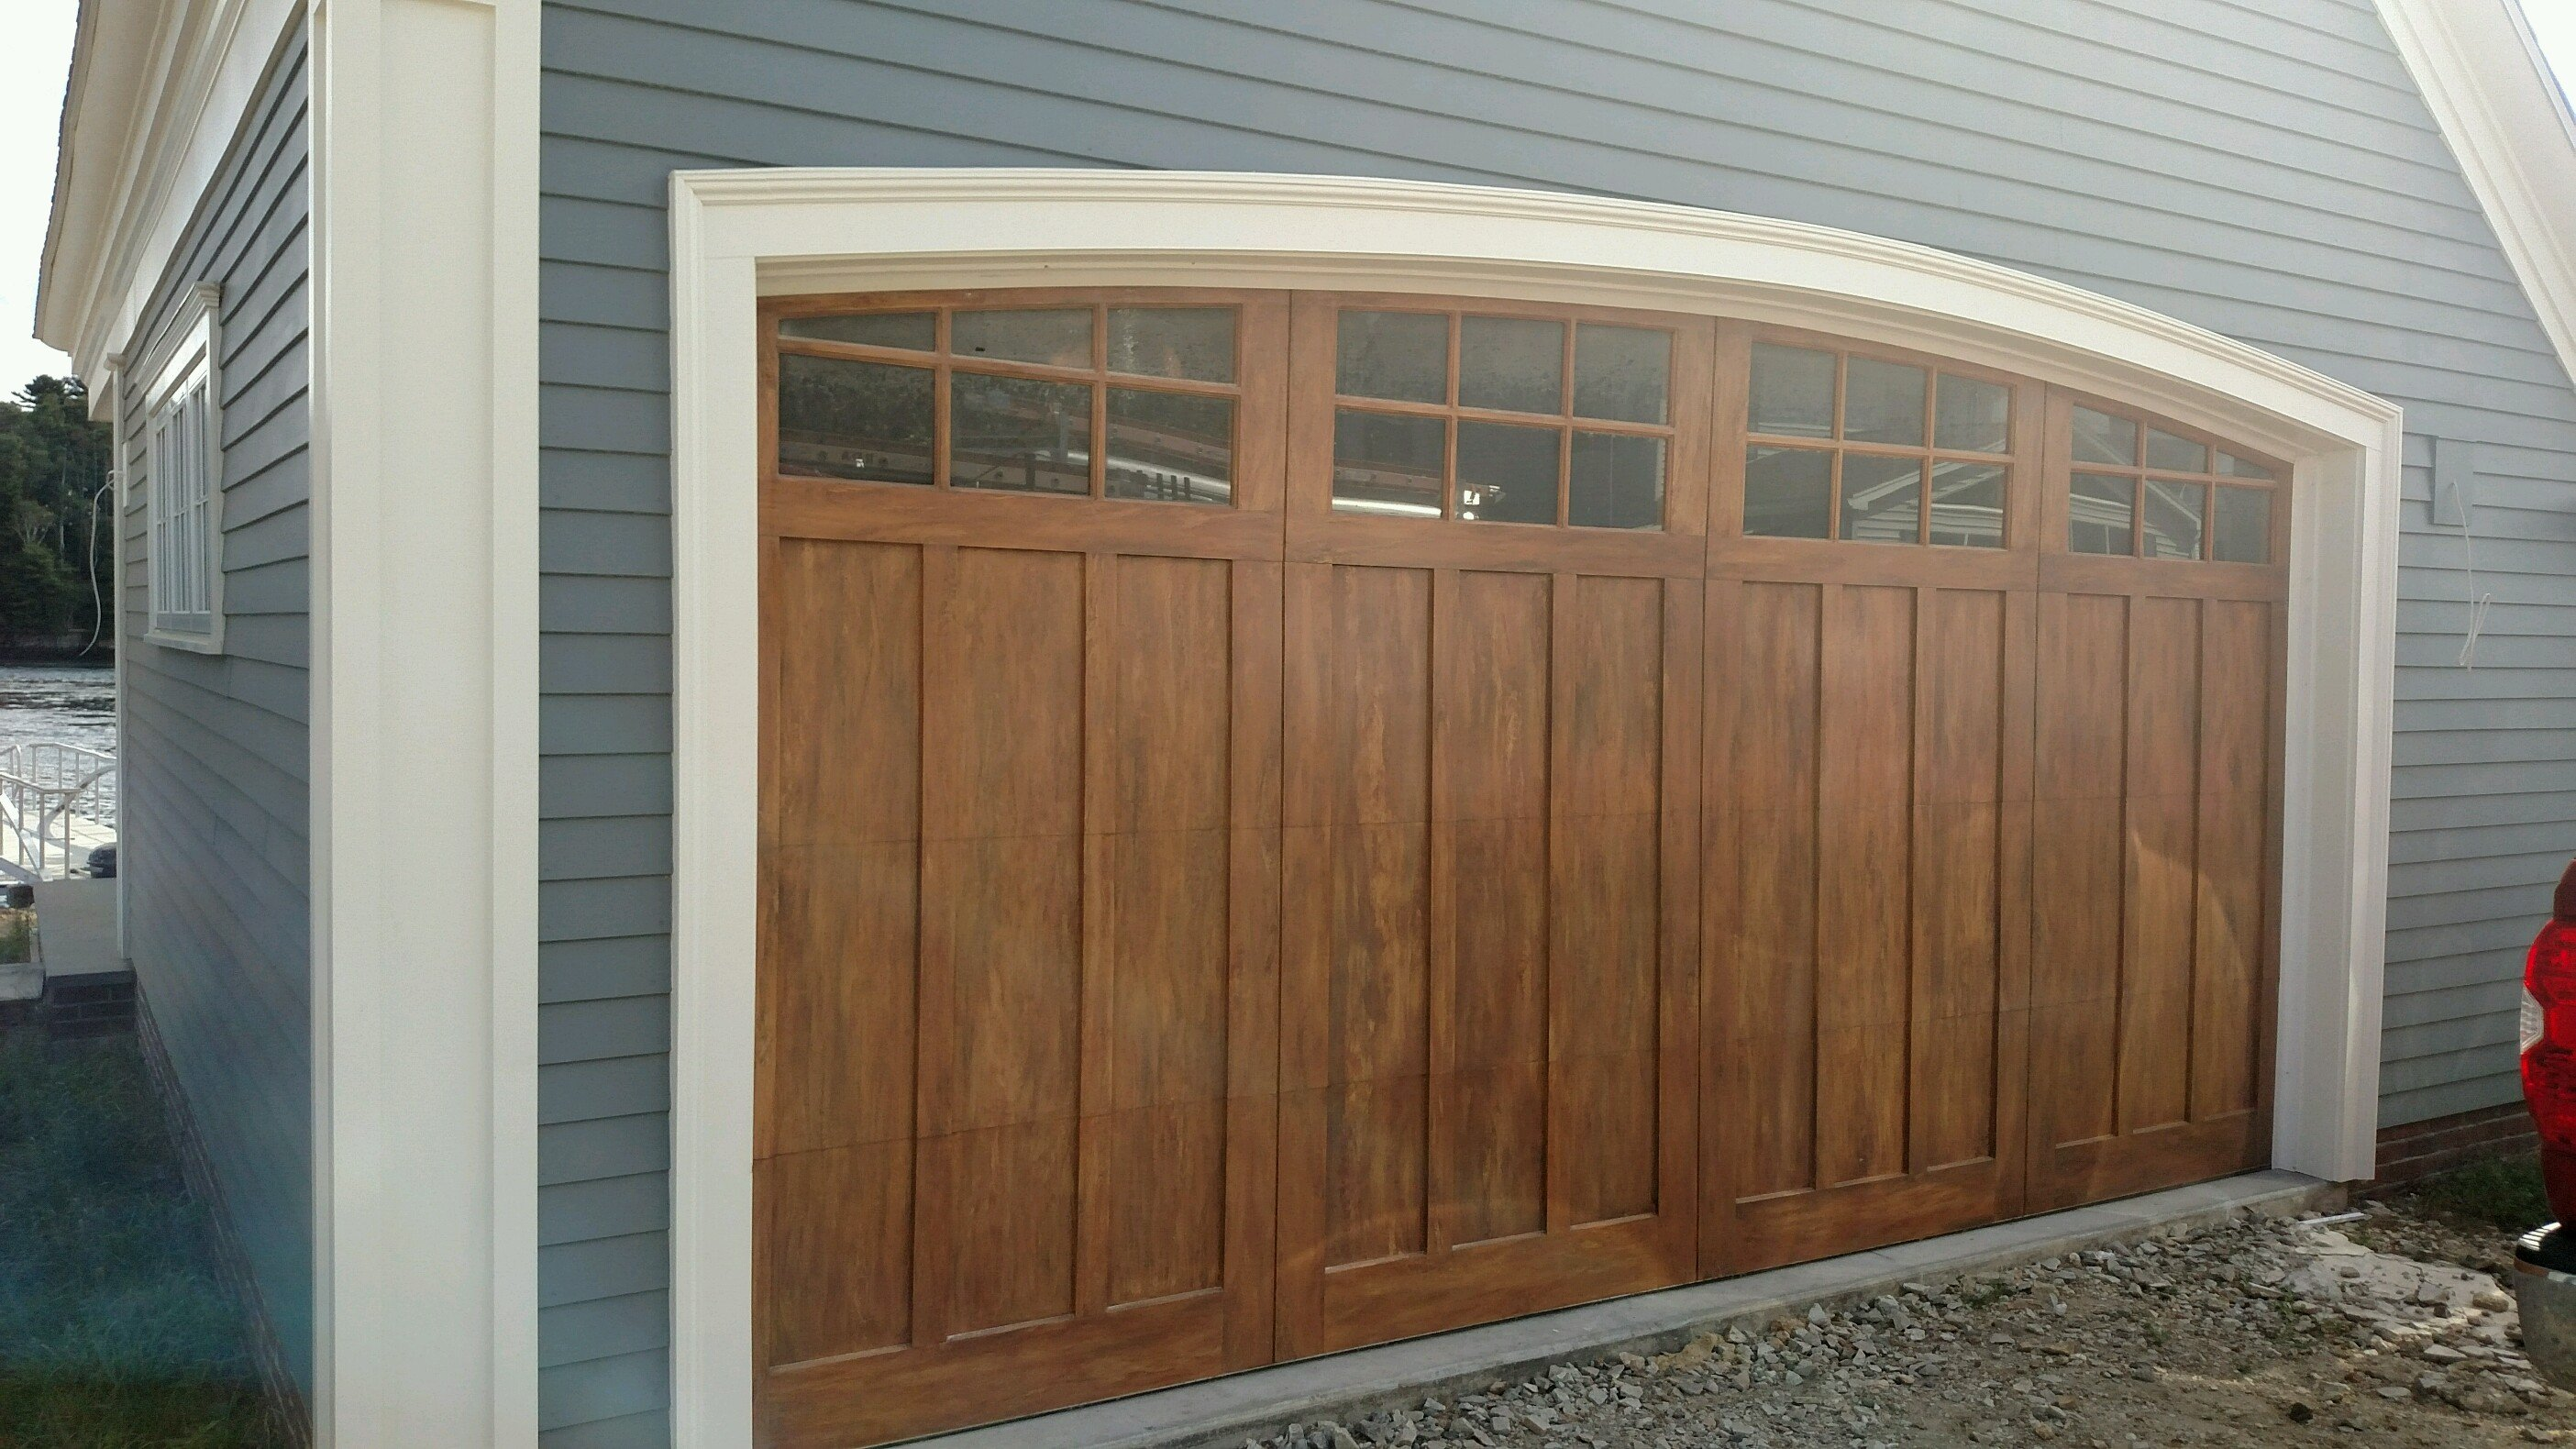 Residential garage doors wood garage doors manchester nh - Reasons inspect garage door ...